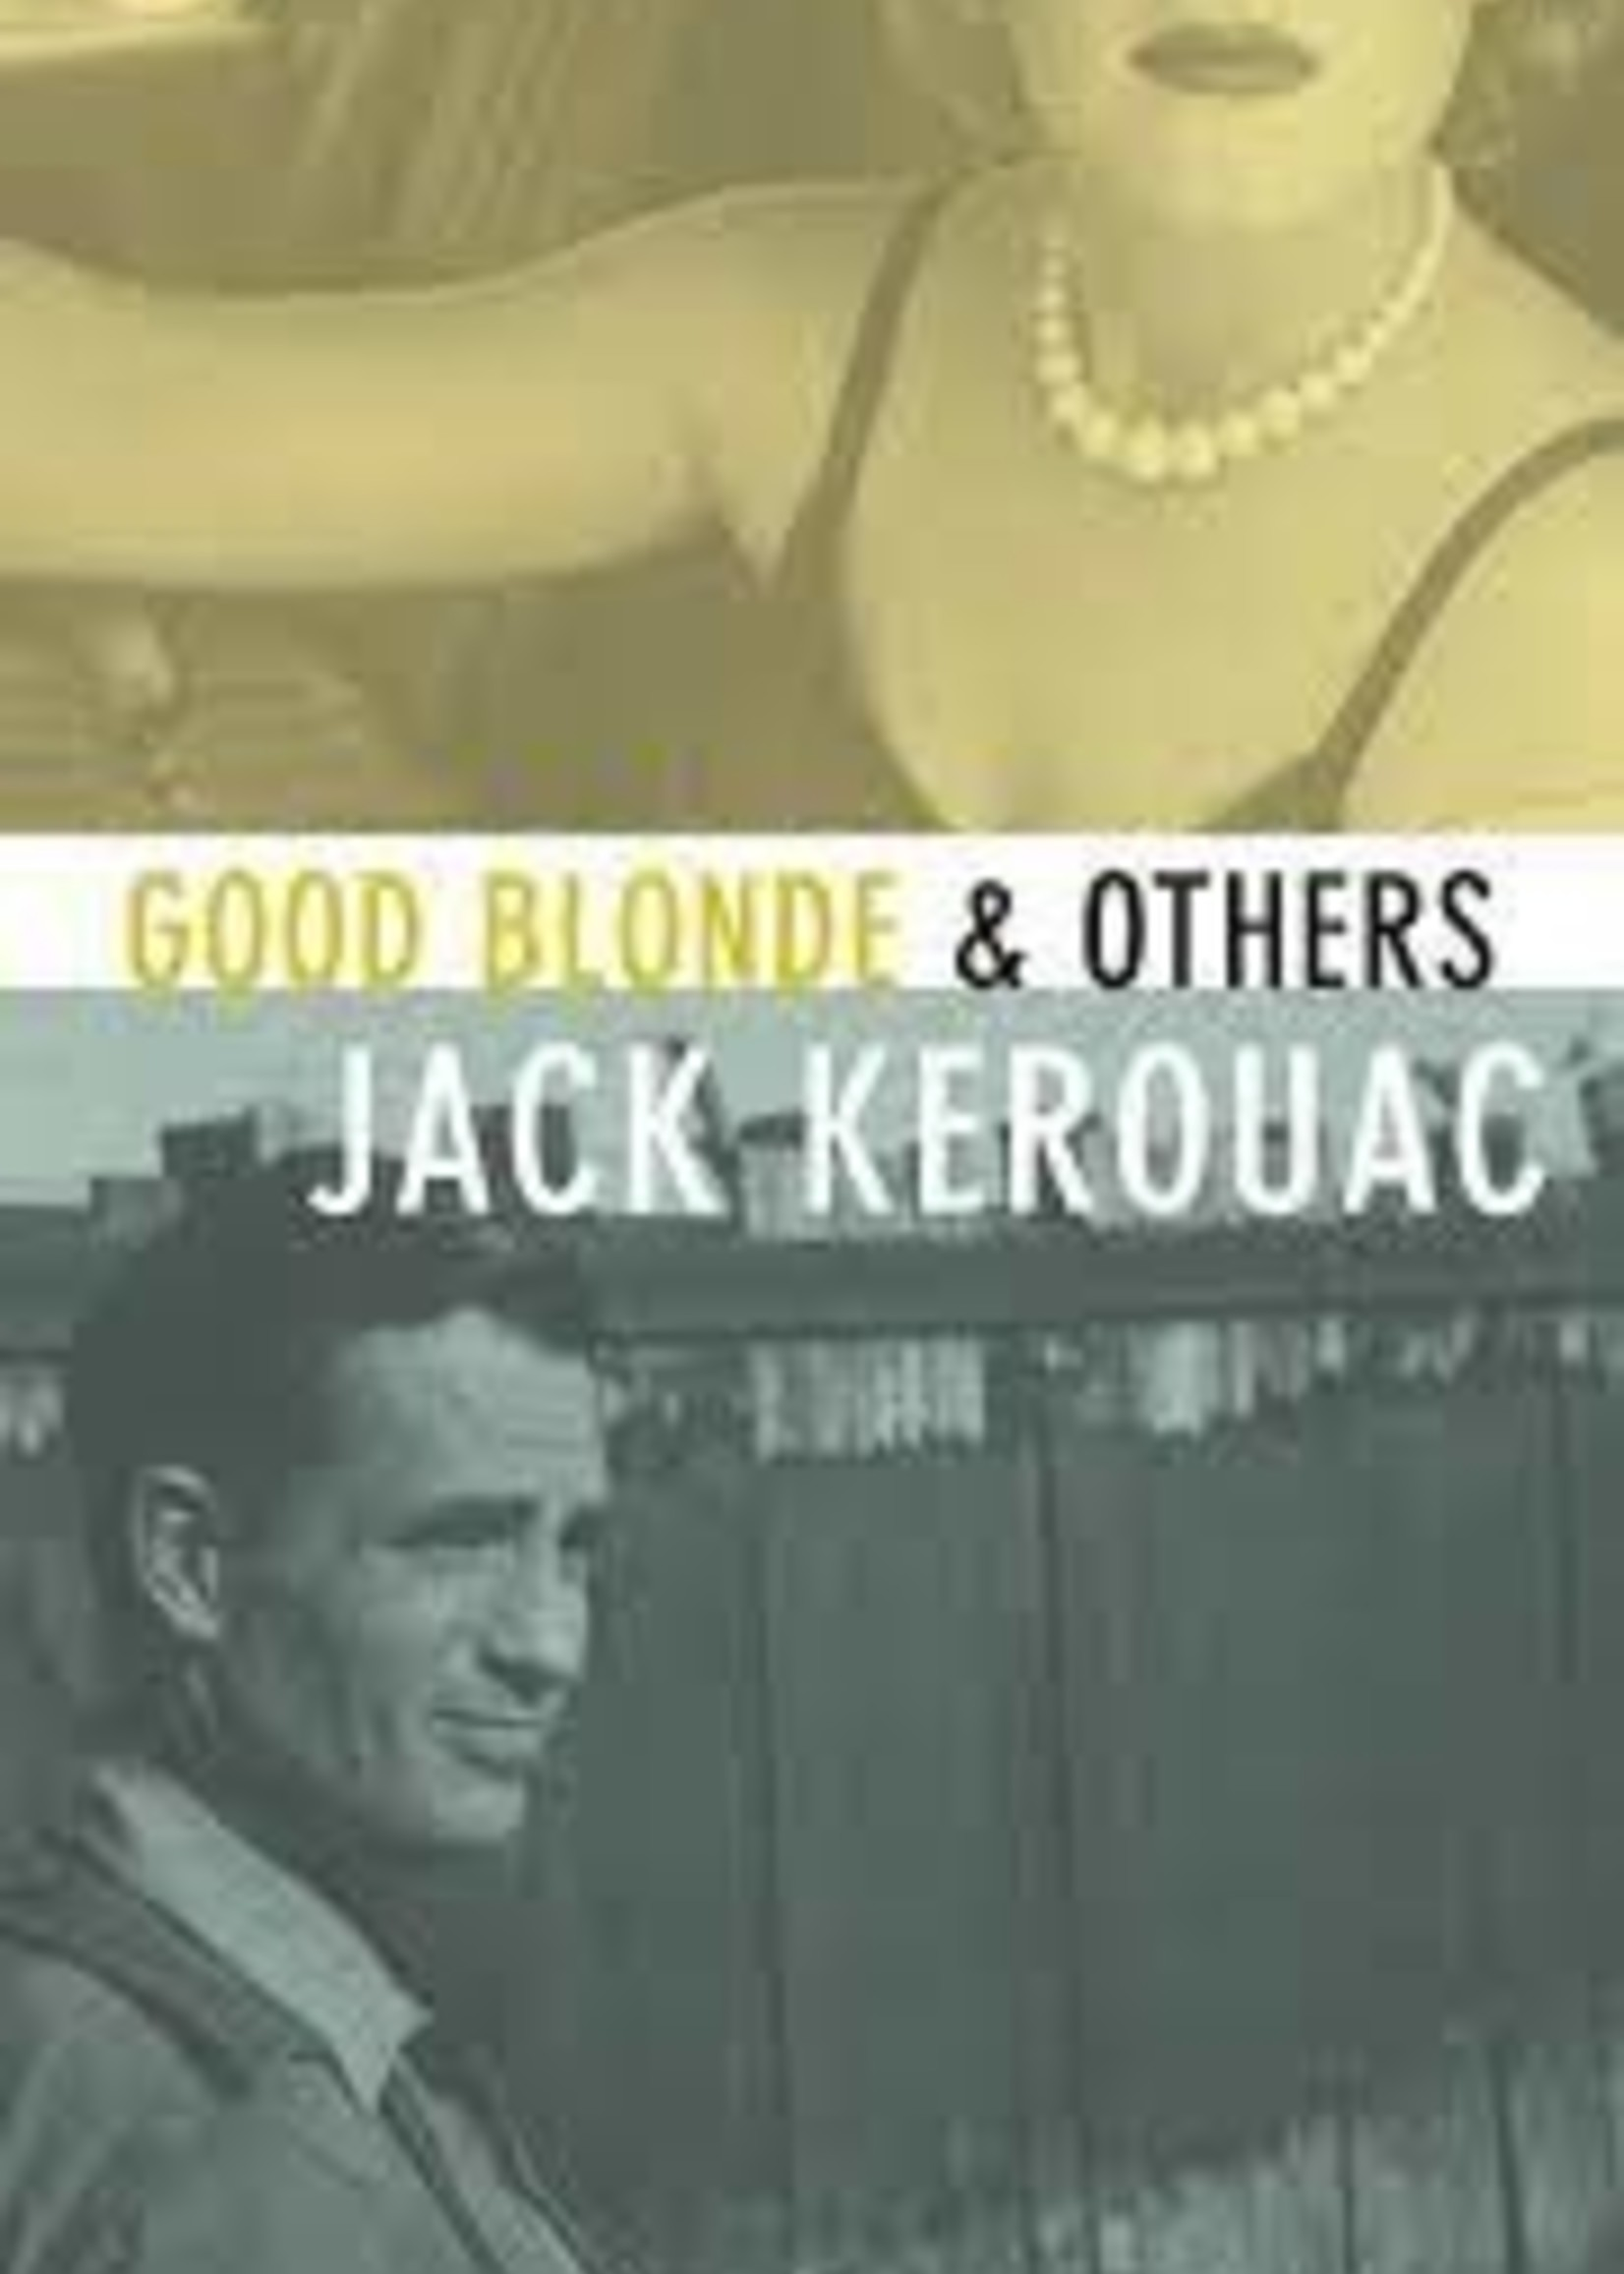 Good Blond & Others by Jack Kerouac